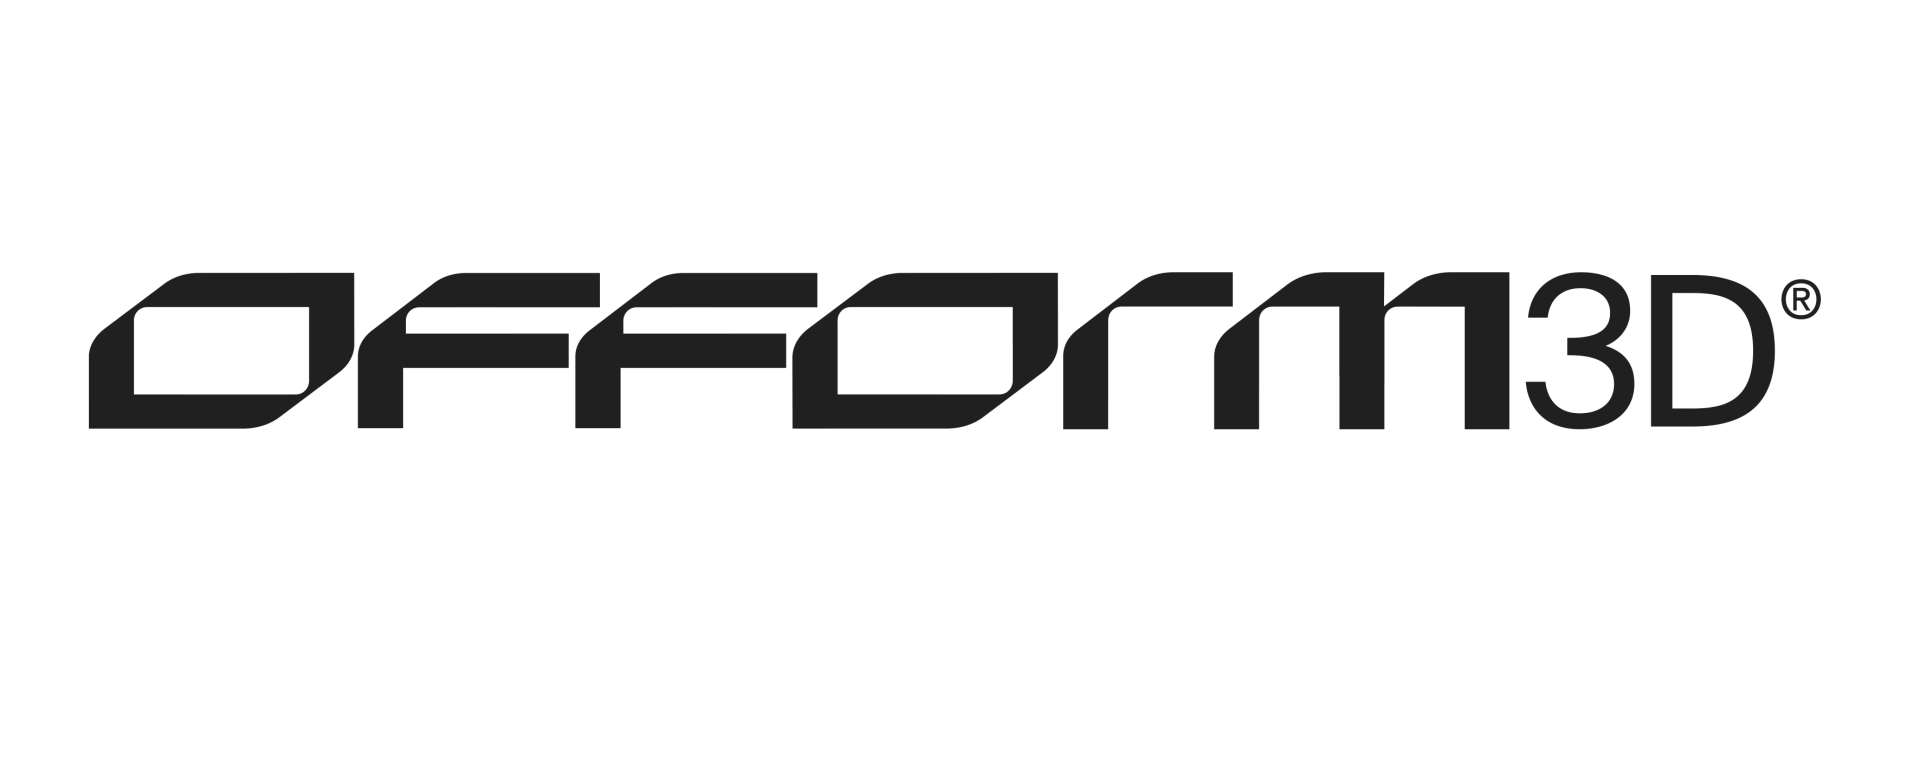 OFFORM3_LOGO_long.png